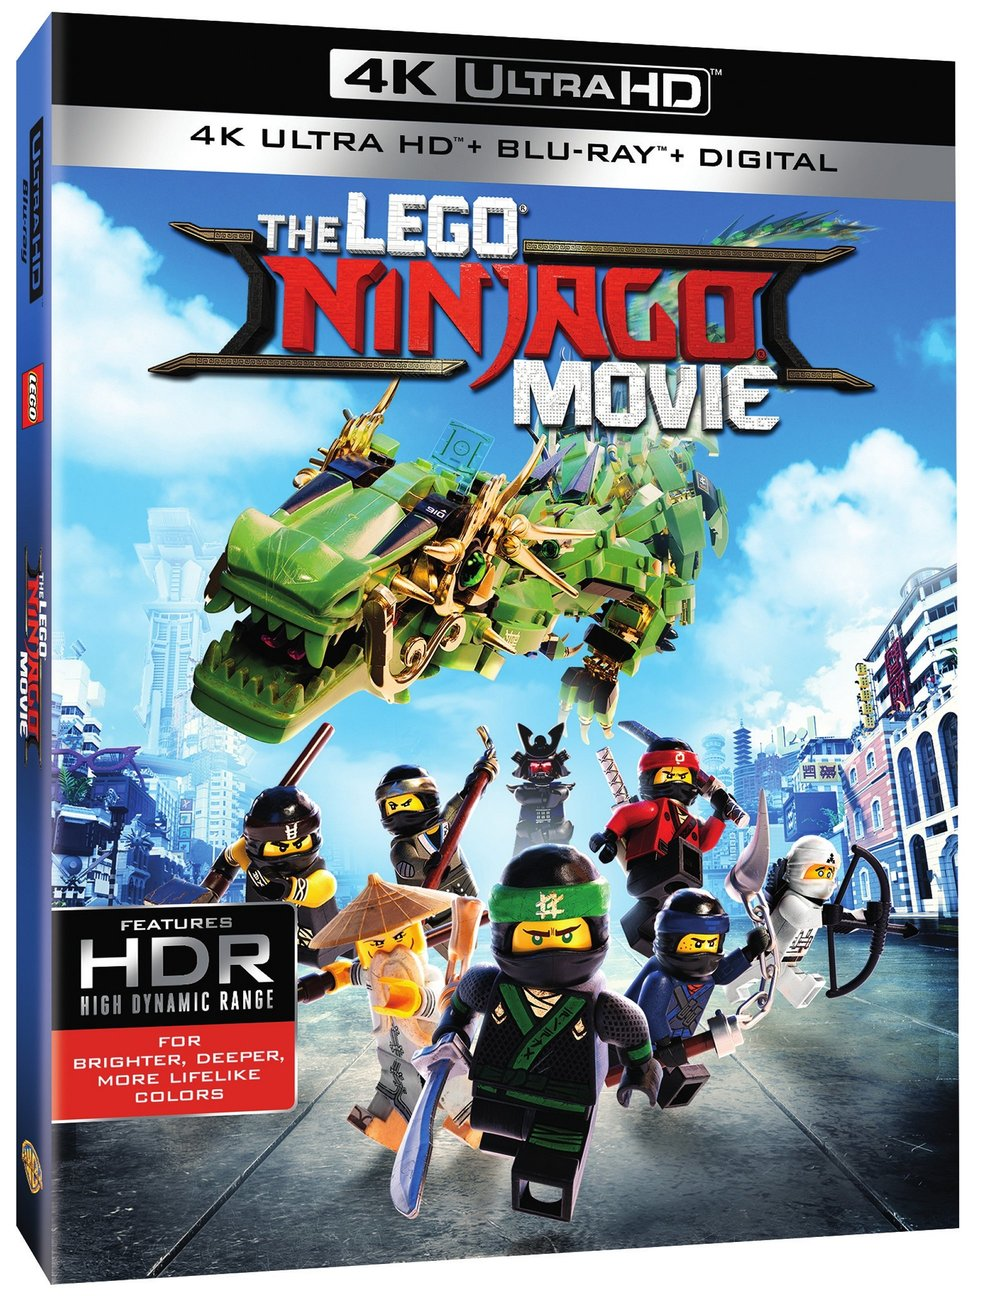 The Ninjago Movie coming to Blu-Ray and DVD December 19th, 2017